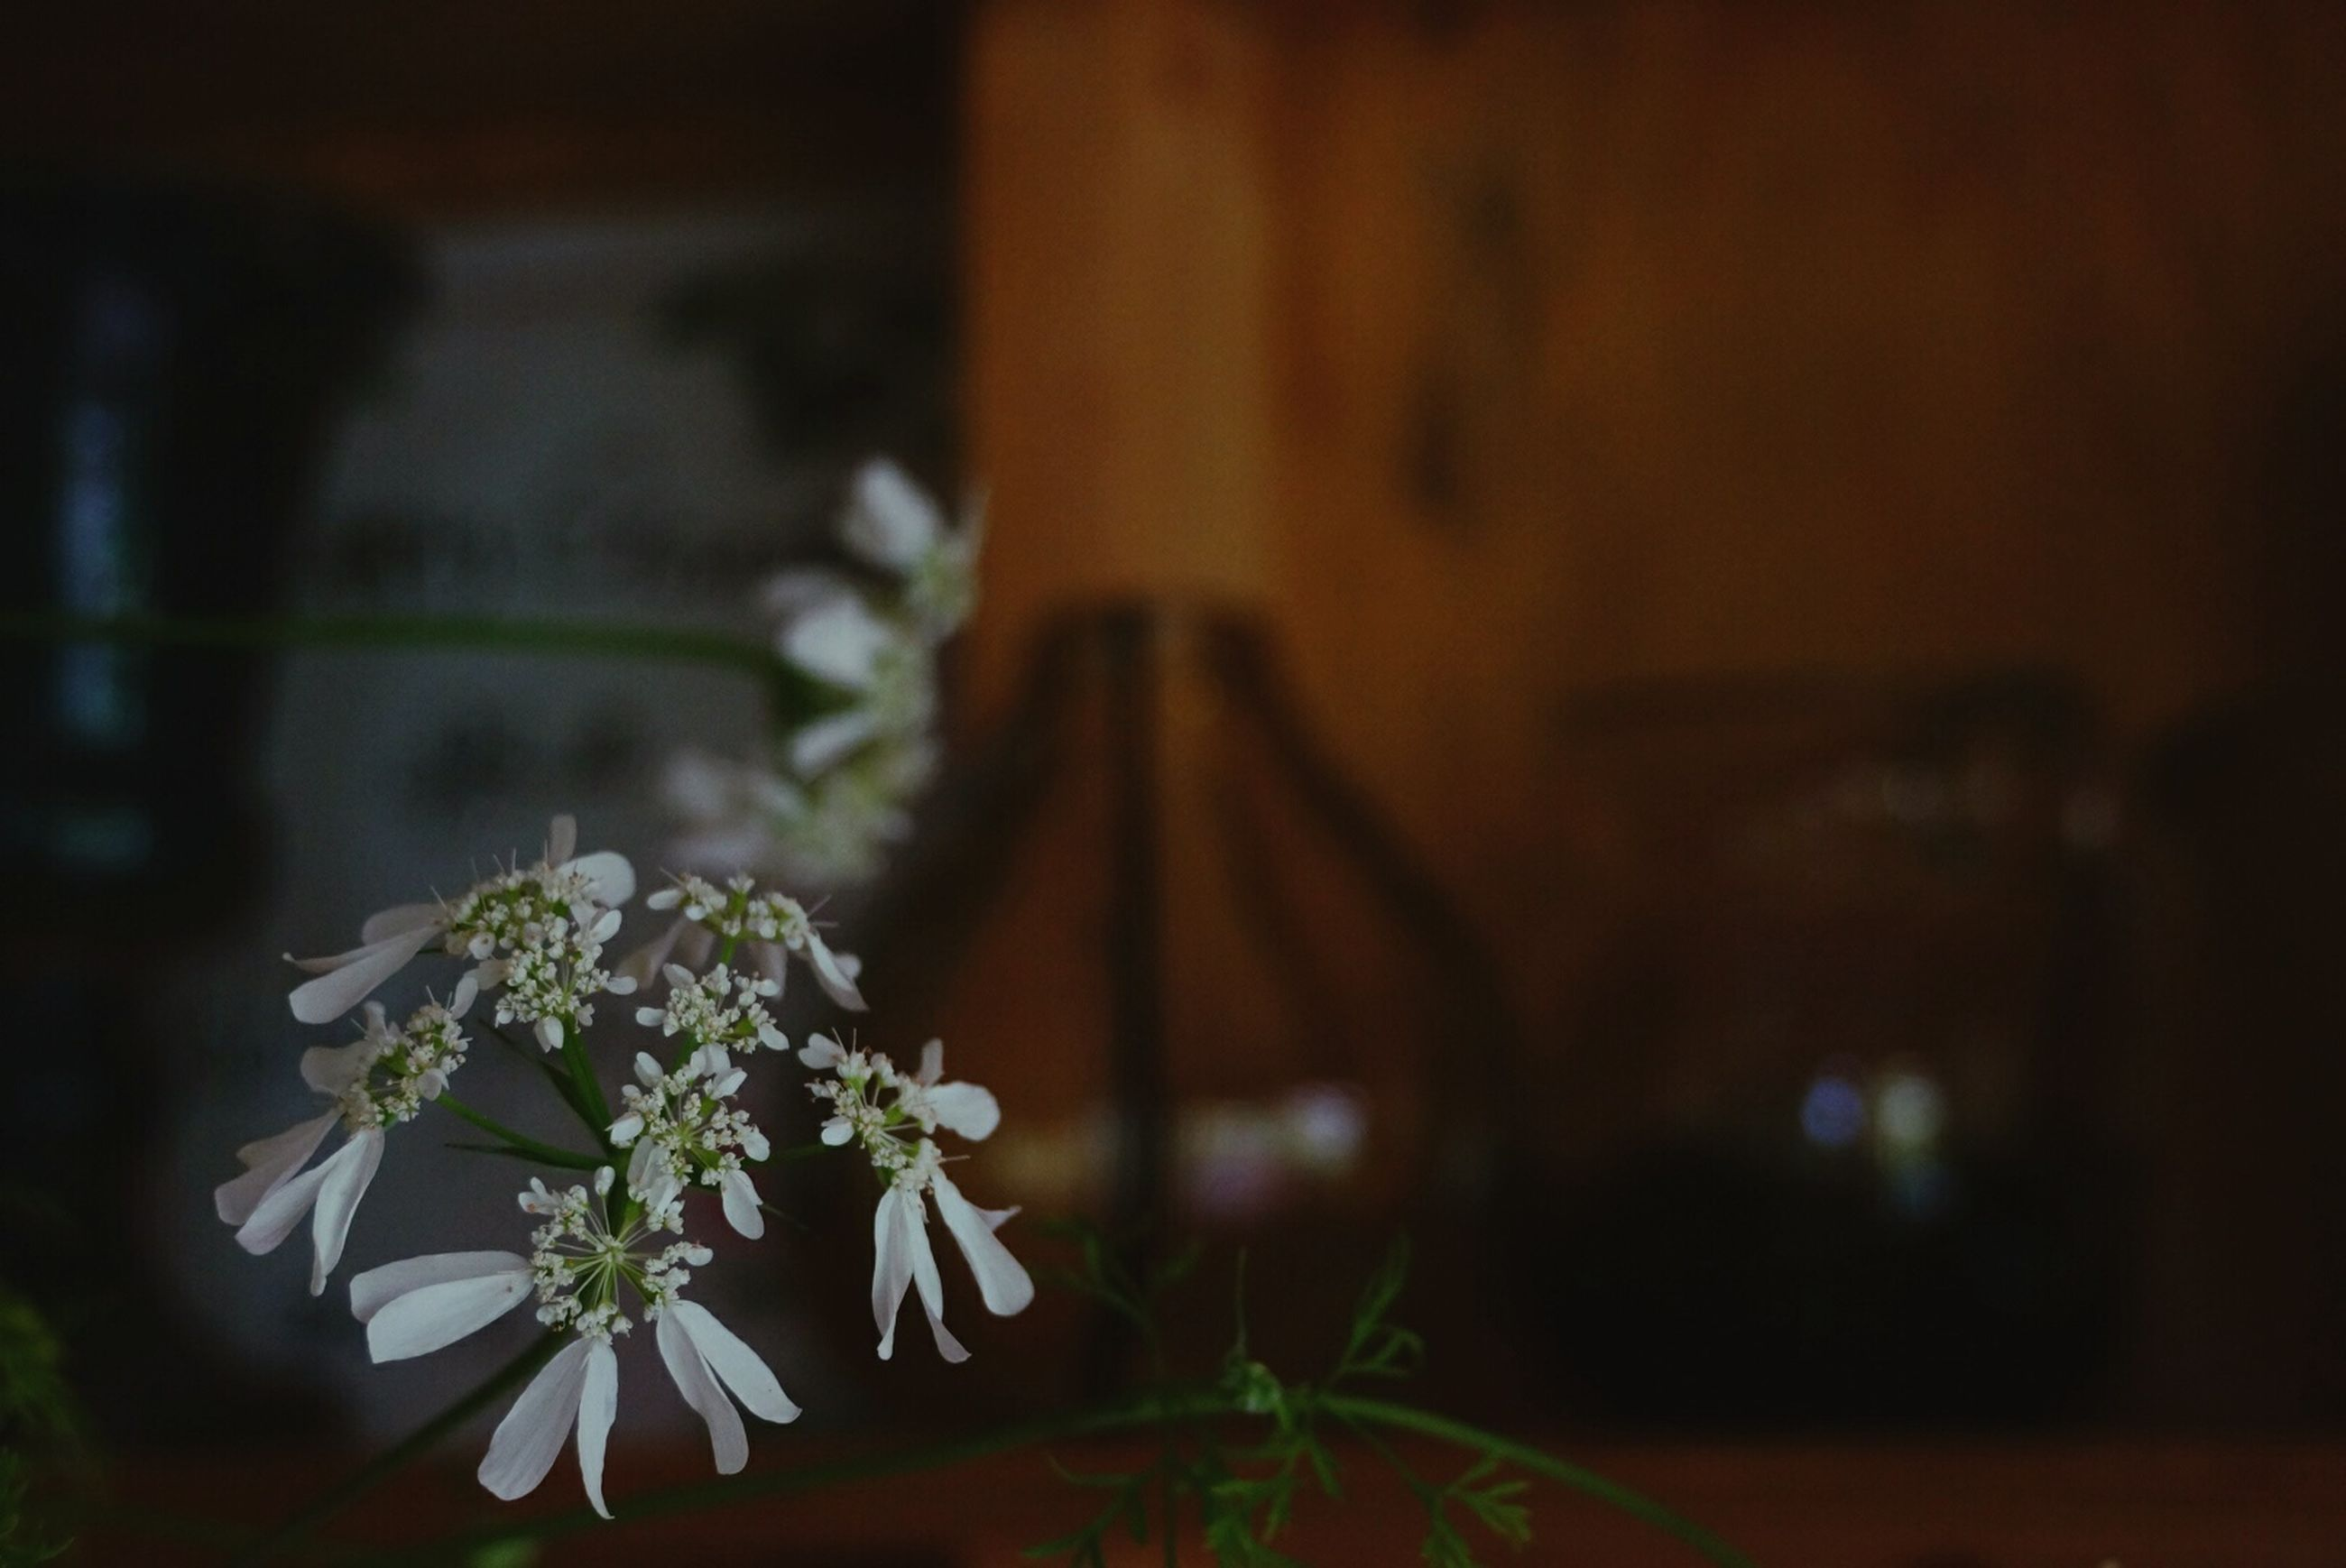 focus on foreground, flower, plant, selective focus, growth, close-up, nature, fragility, night, no people, outdoors, built structure, stem, beauty in nature, front or back yard, tree, freshness, white color